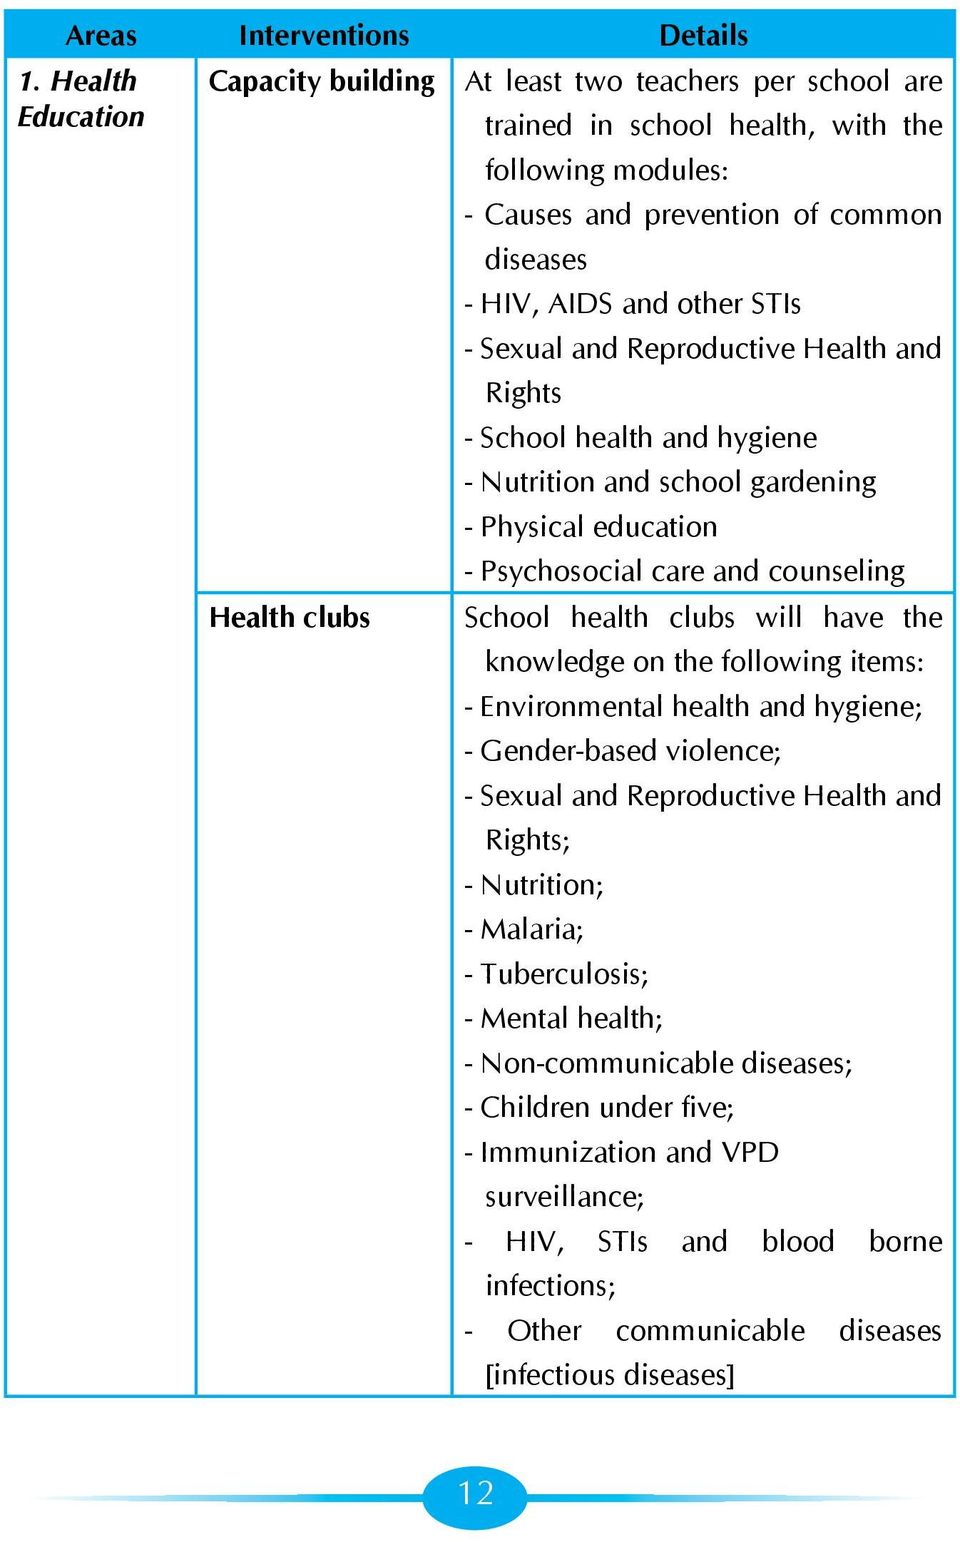 Sexual and Reproductive Health and Rights - School health and hygiene - Nutrition and school gardening - Physical education - Psychosocial care and counseling Health clubs School health clubs will